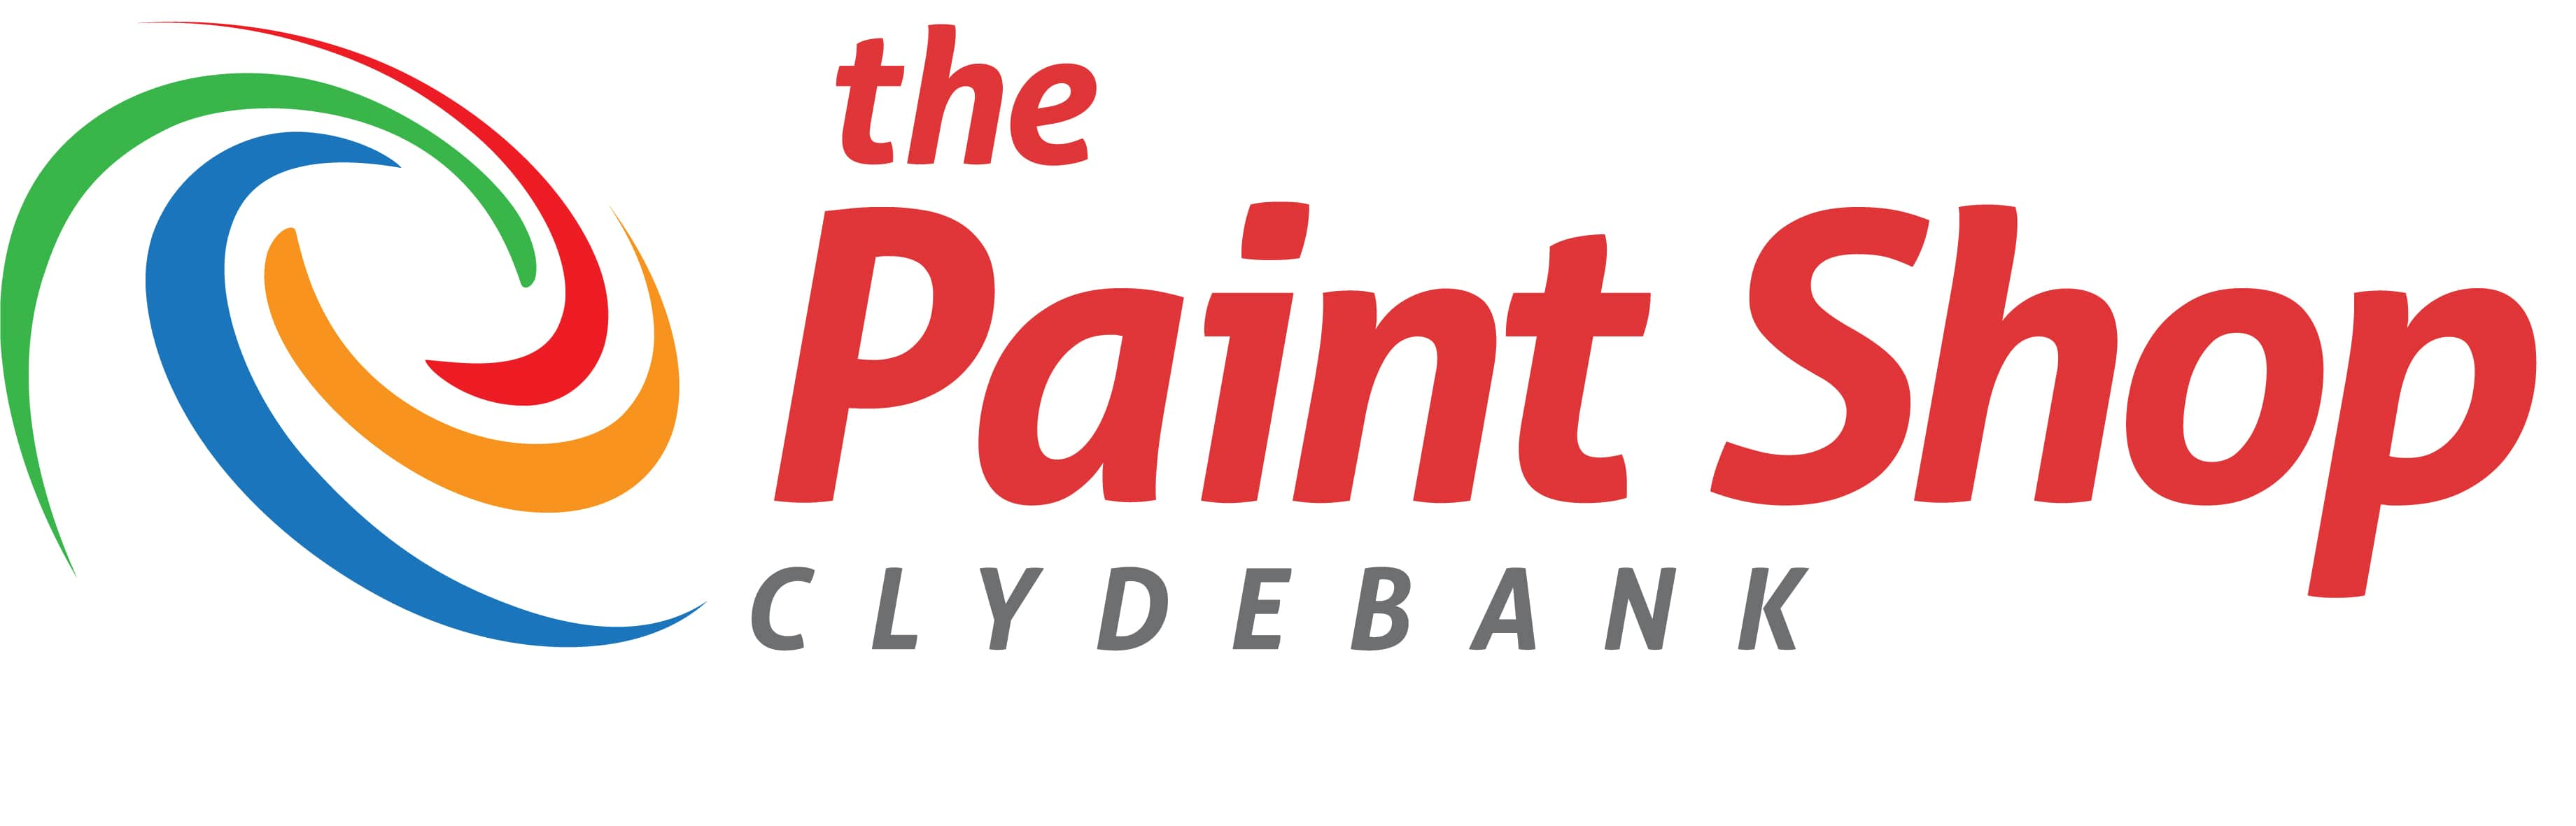 The Paint Shop Clydebank